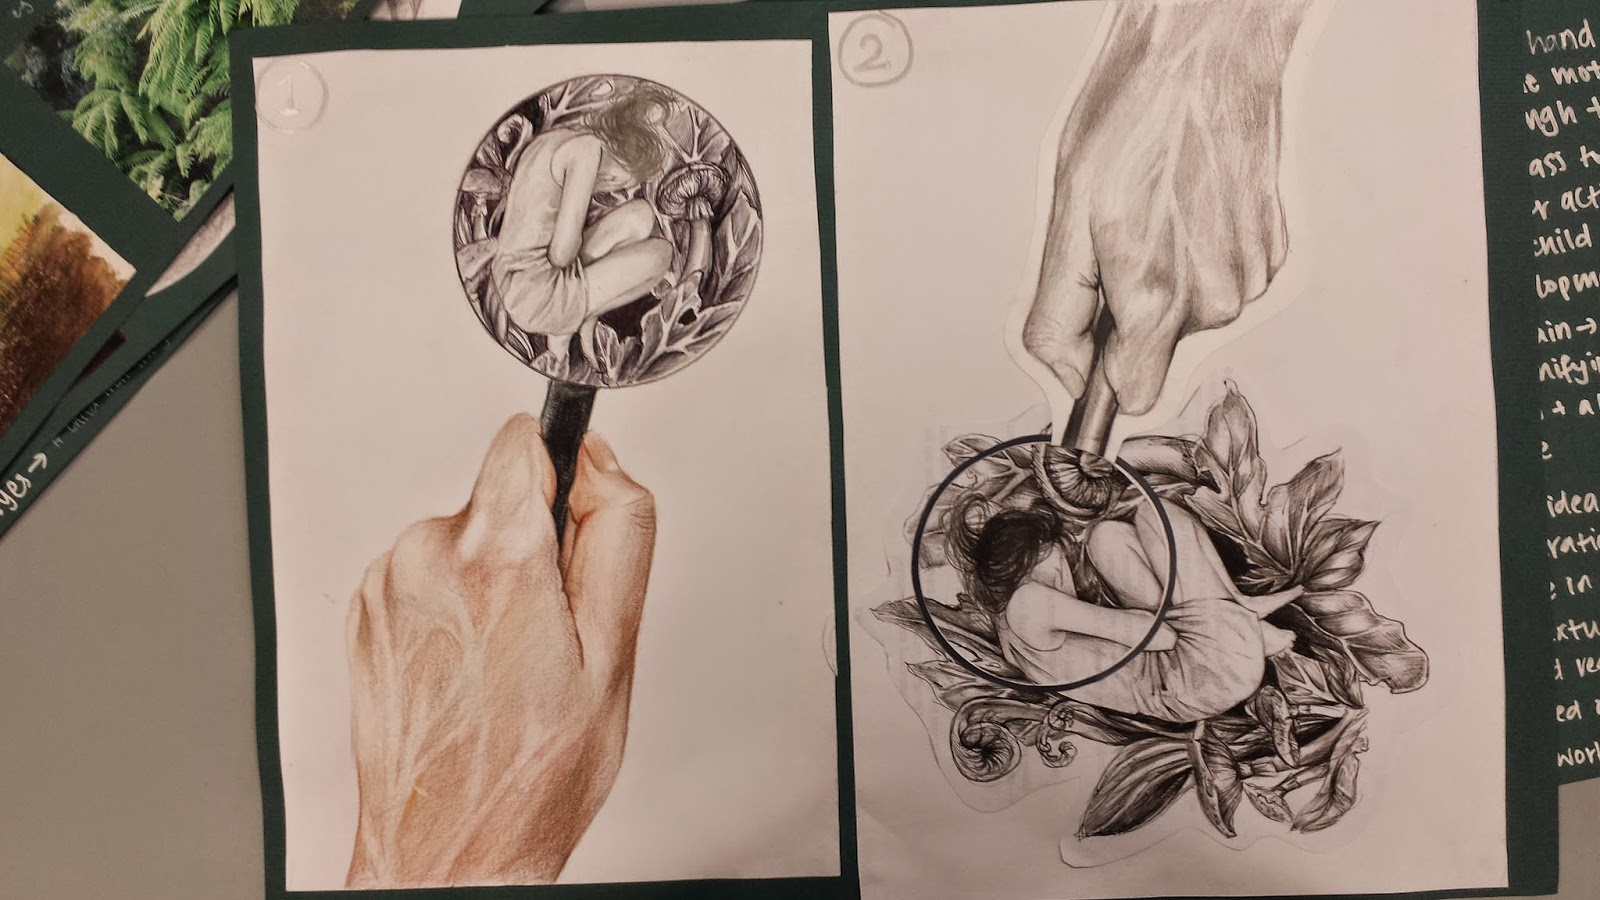 Help with my art coursework?